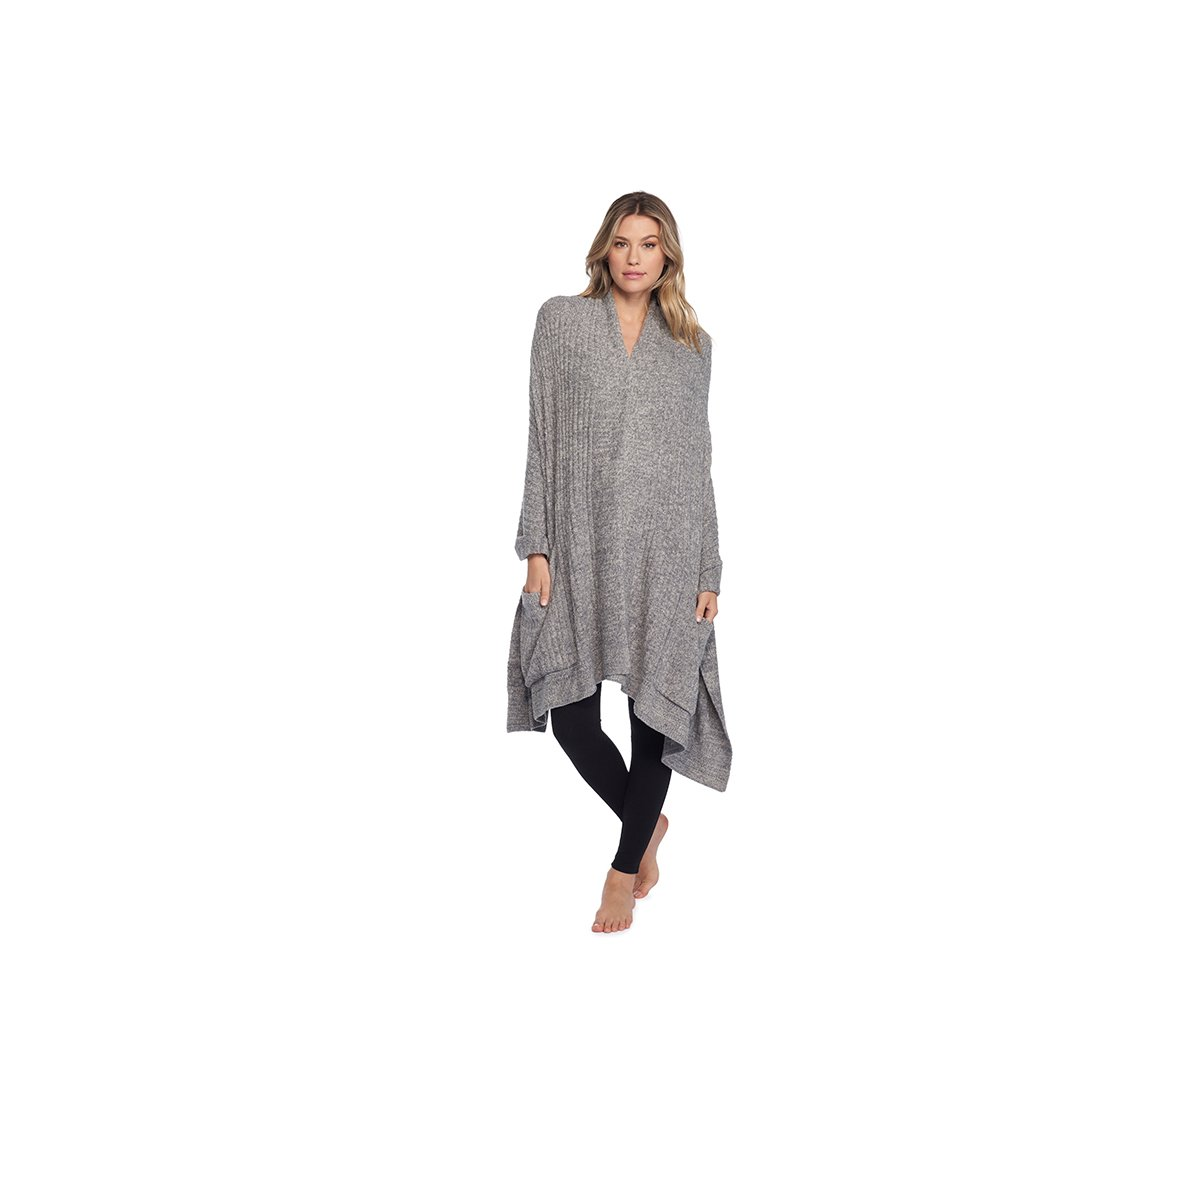 Barefoot Dreams The Cozychic Light Travel Shawl (Heathered Graphite/Stone)